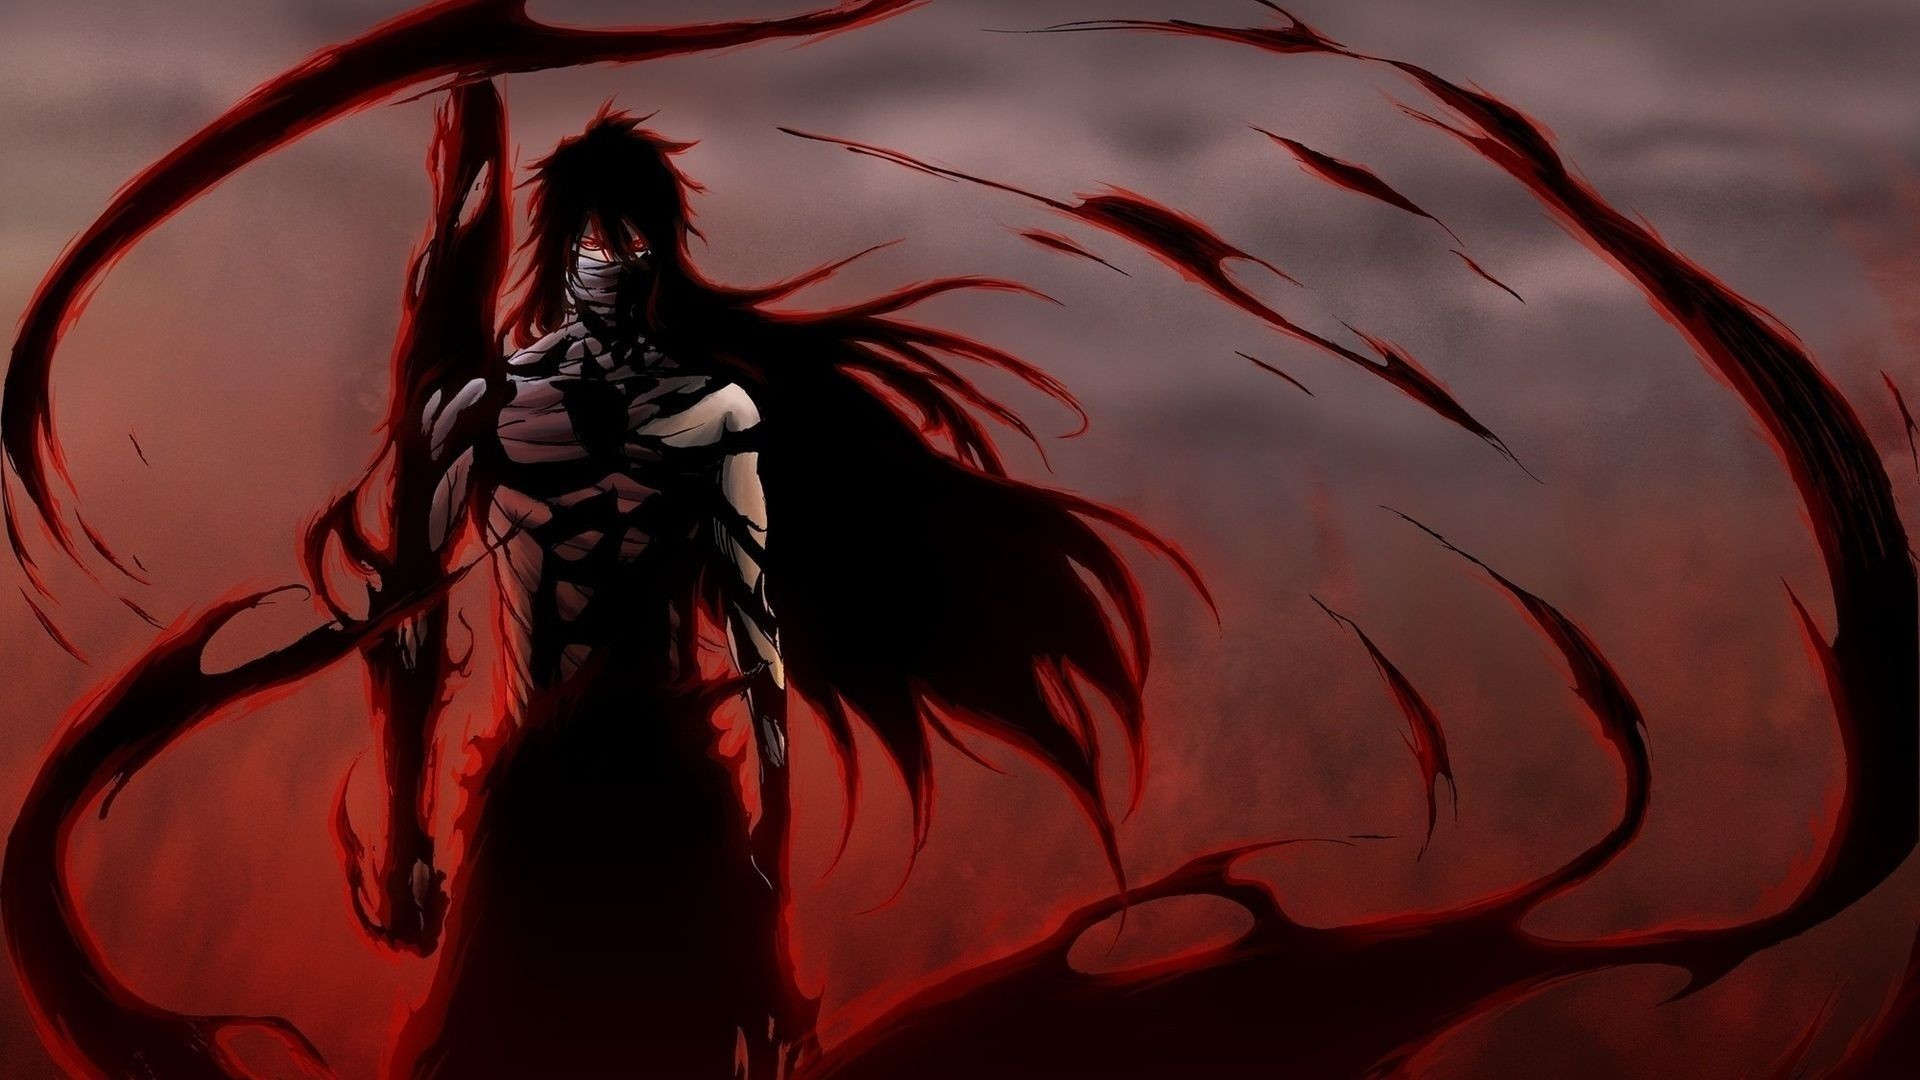 Res: 1920x1080, 356+ Best HD Cool Anime Wallpapers, 5323278 1920x1200 px .